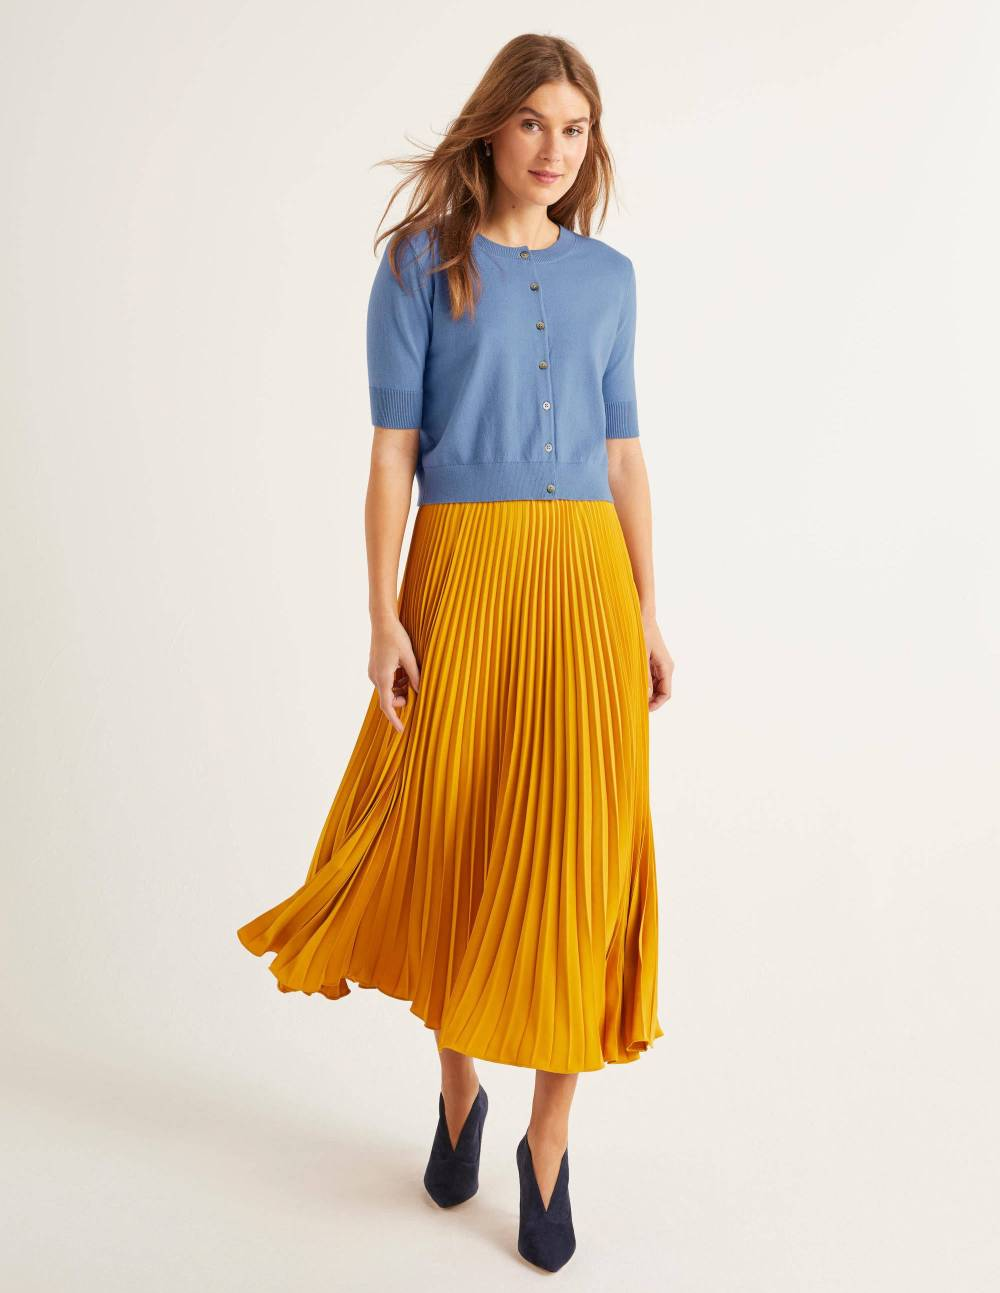 boden timeless chic affordable clothing